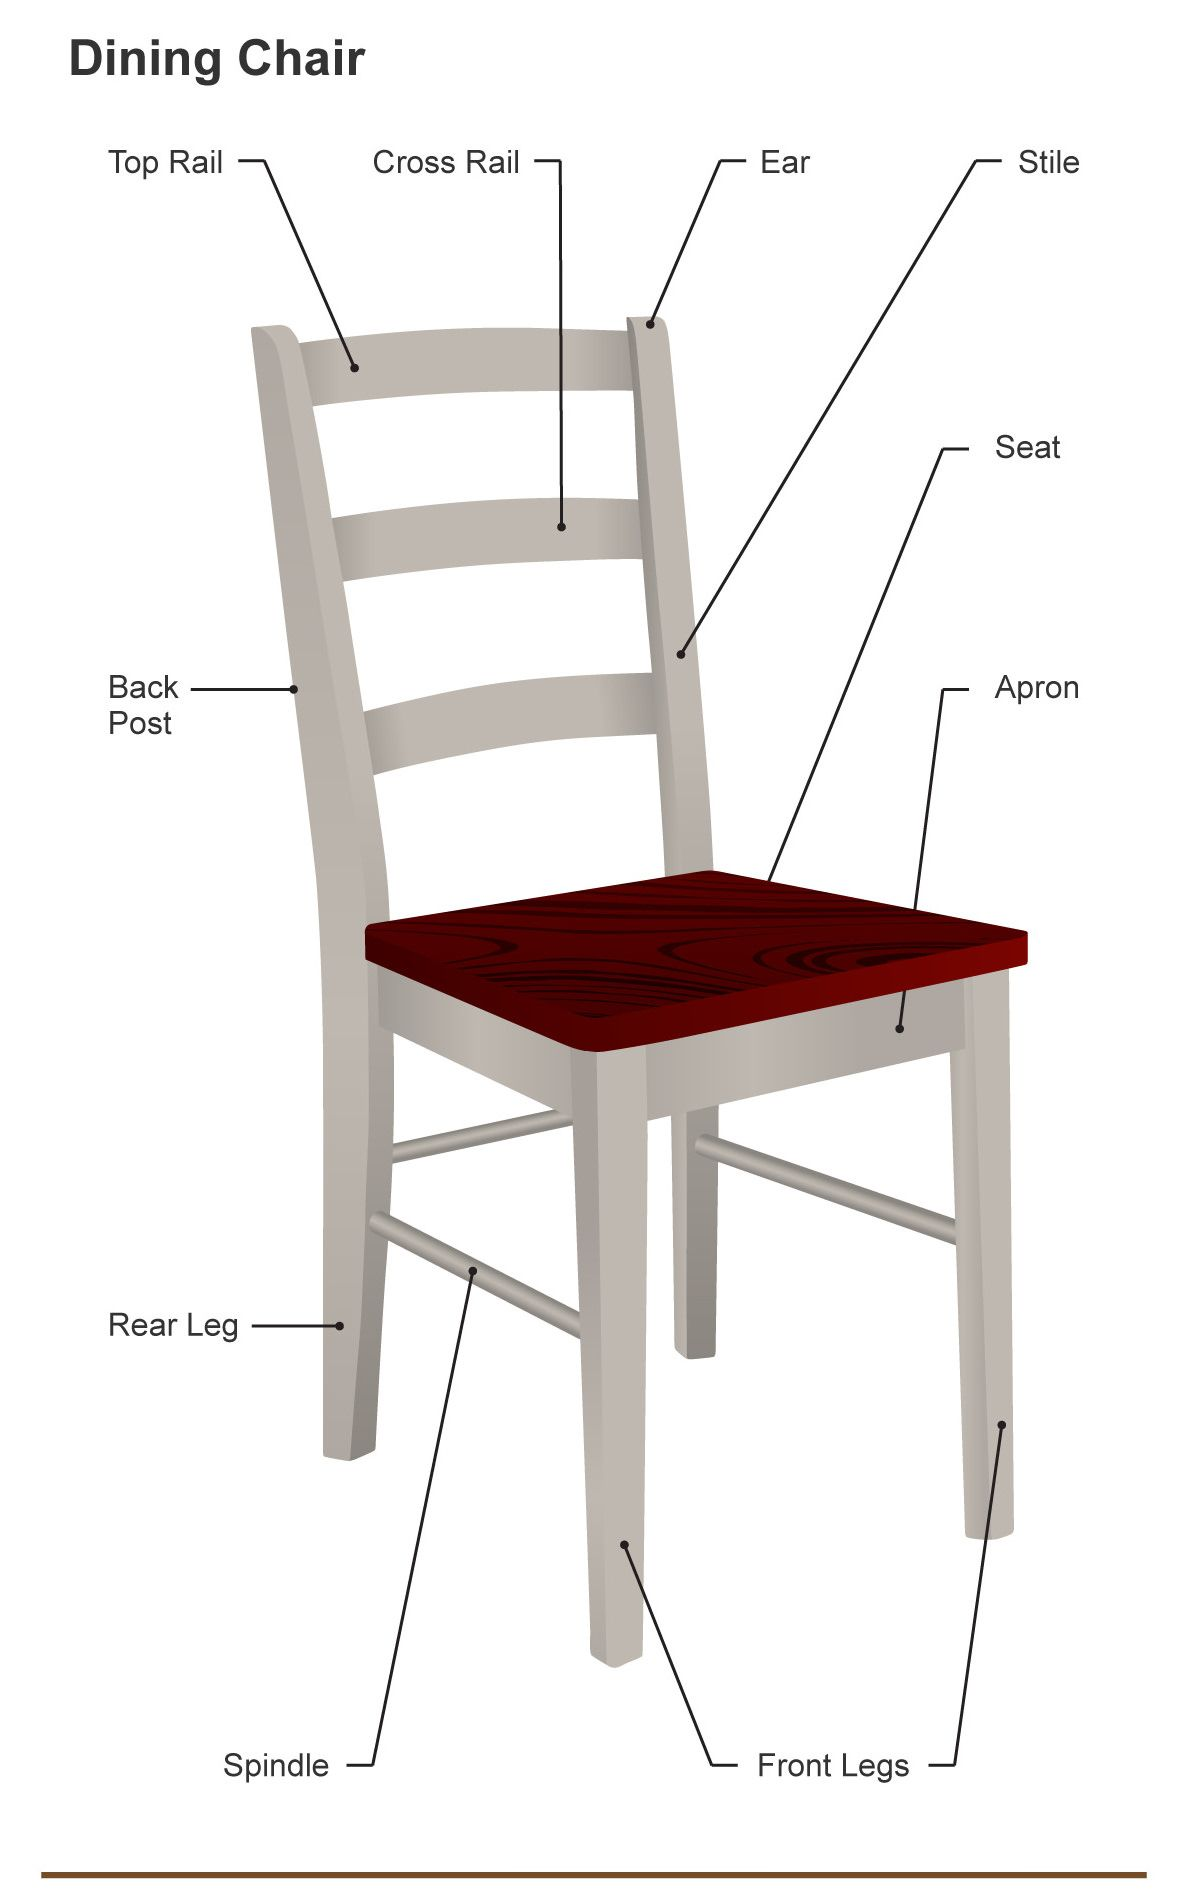 The Different Parts Of A Chair Dining Desk And Armchair Dining Room Furniture Chair Parts Chair